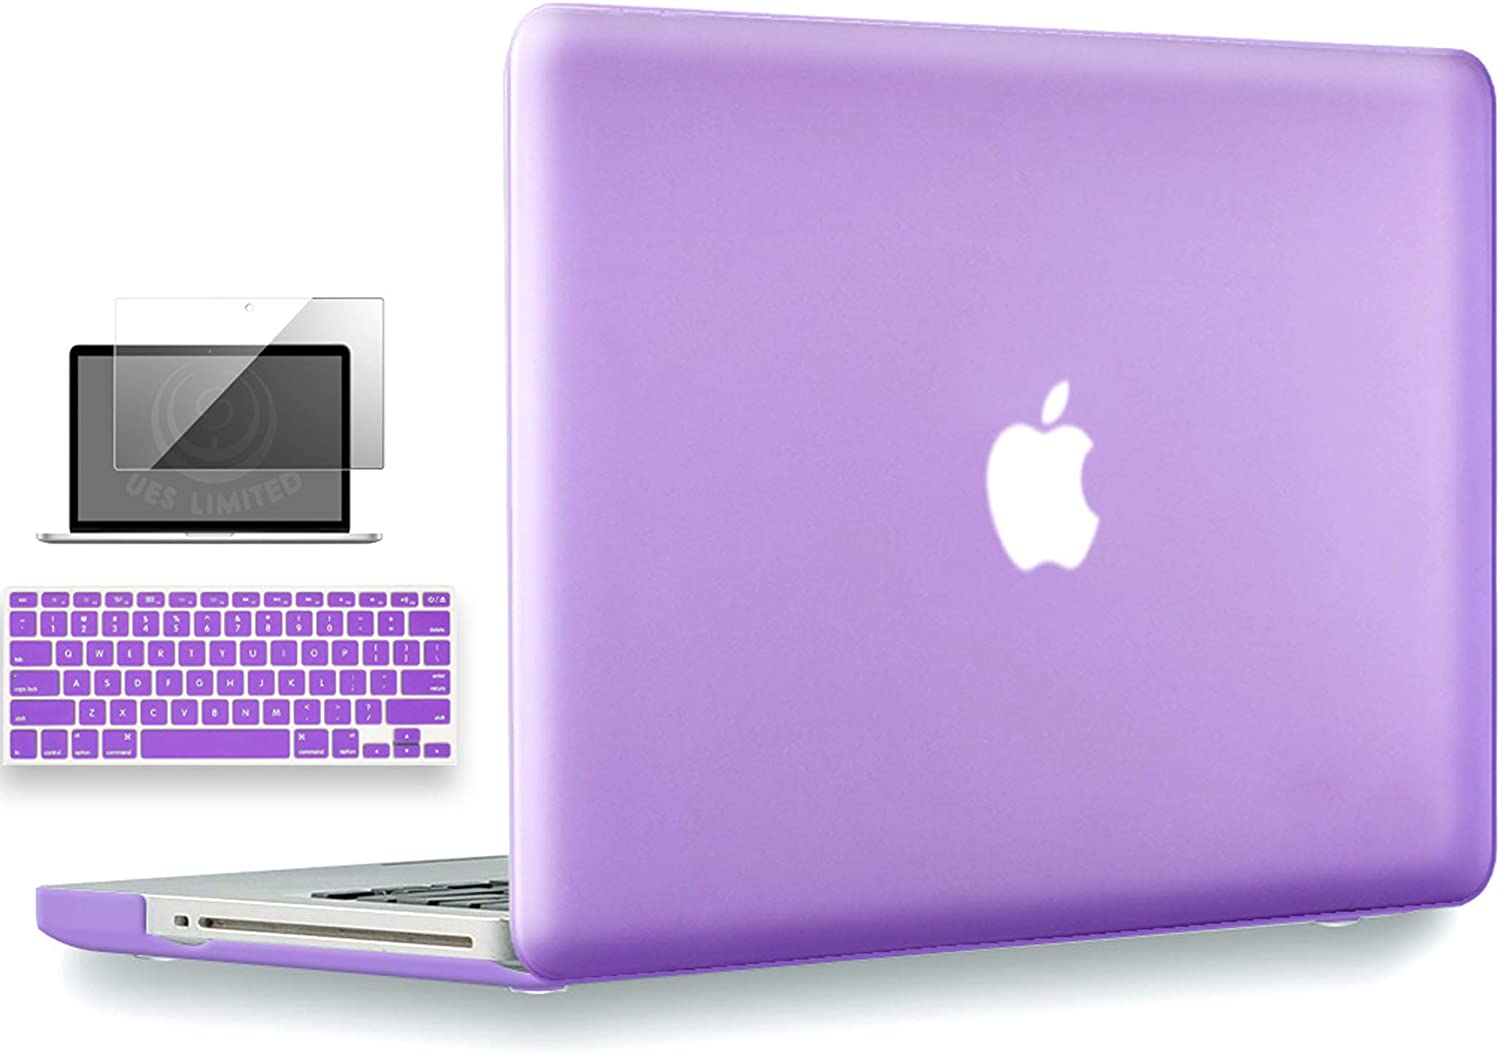 UESWILL 3in1 Smooth Matte Hard Shell Case Cover Compatible with MacBook Pro 13 inch with CD-ROM (Non-Retina) (Model A1278) + Keyboard Cover and Screen Protector + Microfibre Cleaning Cloth, Purple